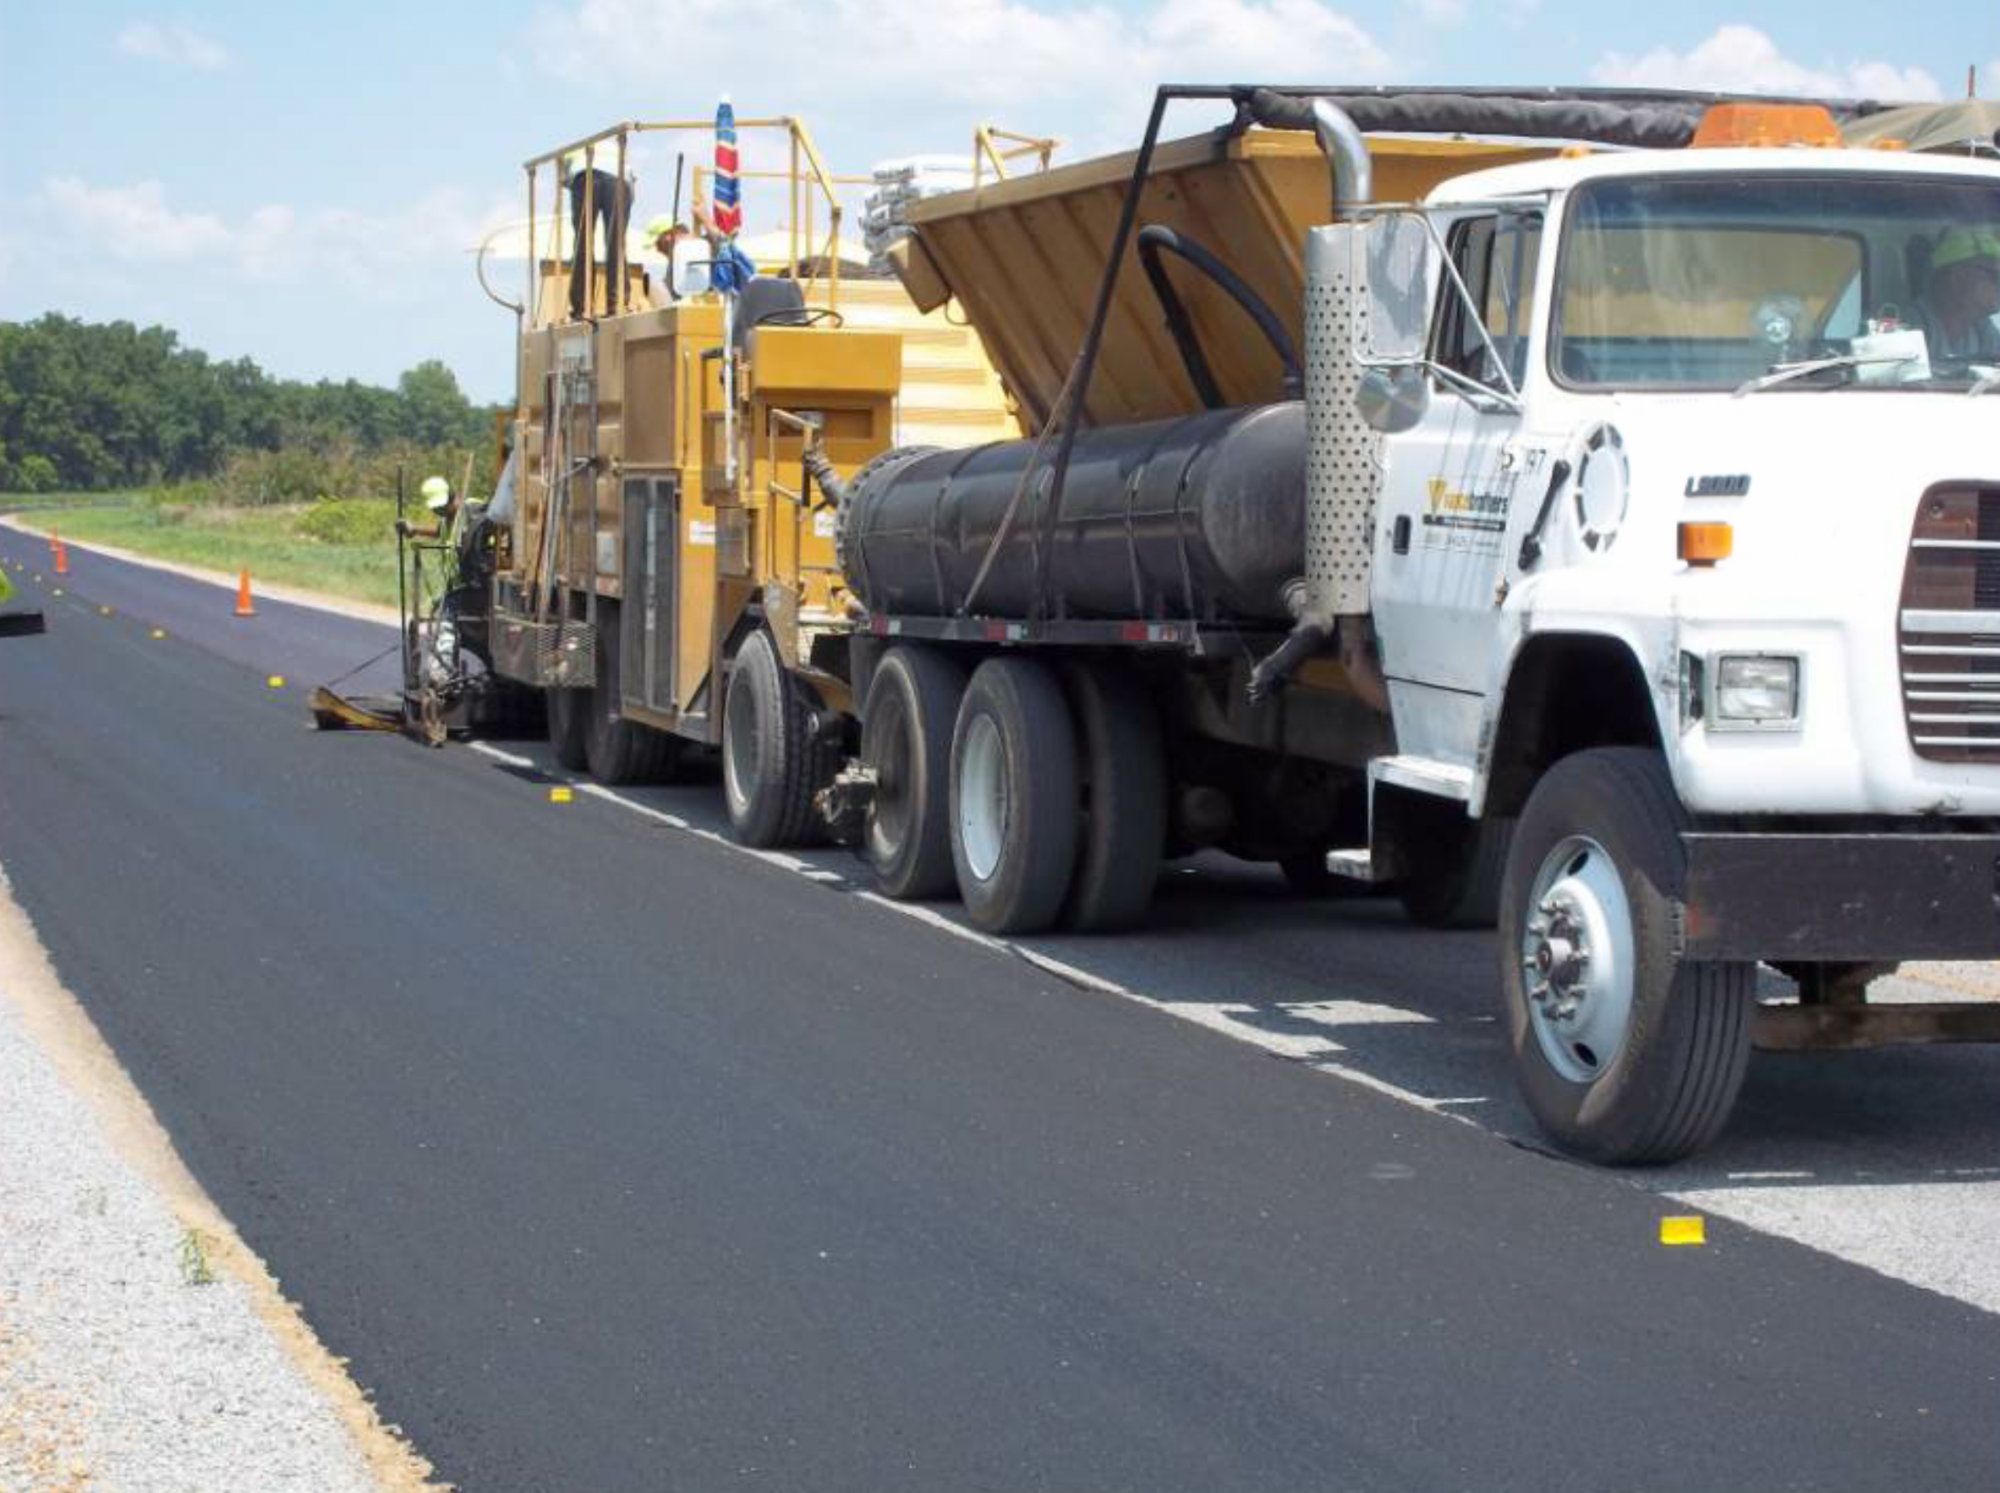 Agencies may already have specs in place for more common pavement preservation treatments, such as micro surfacing. However, the new standards prepared by the ETF could offer a number of benefits.